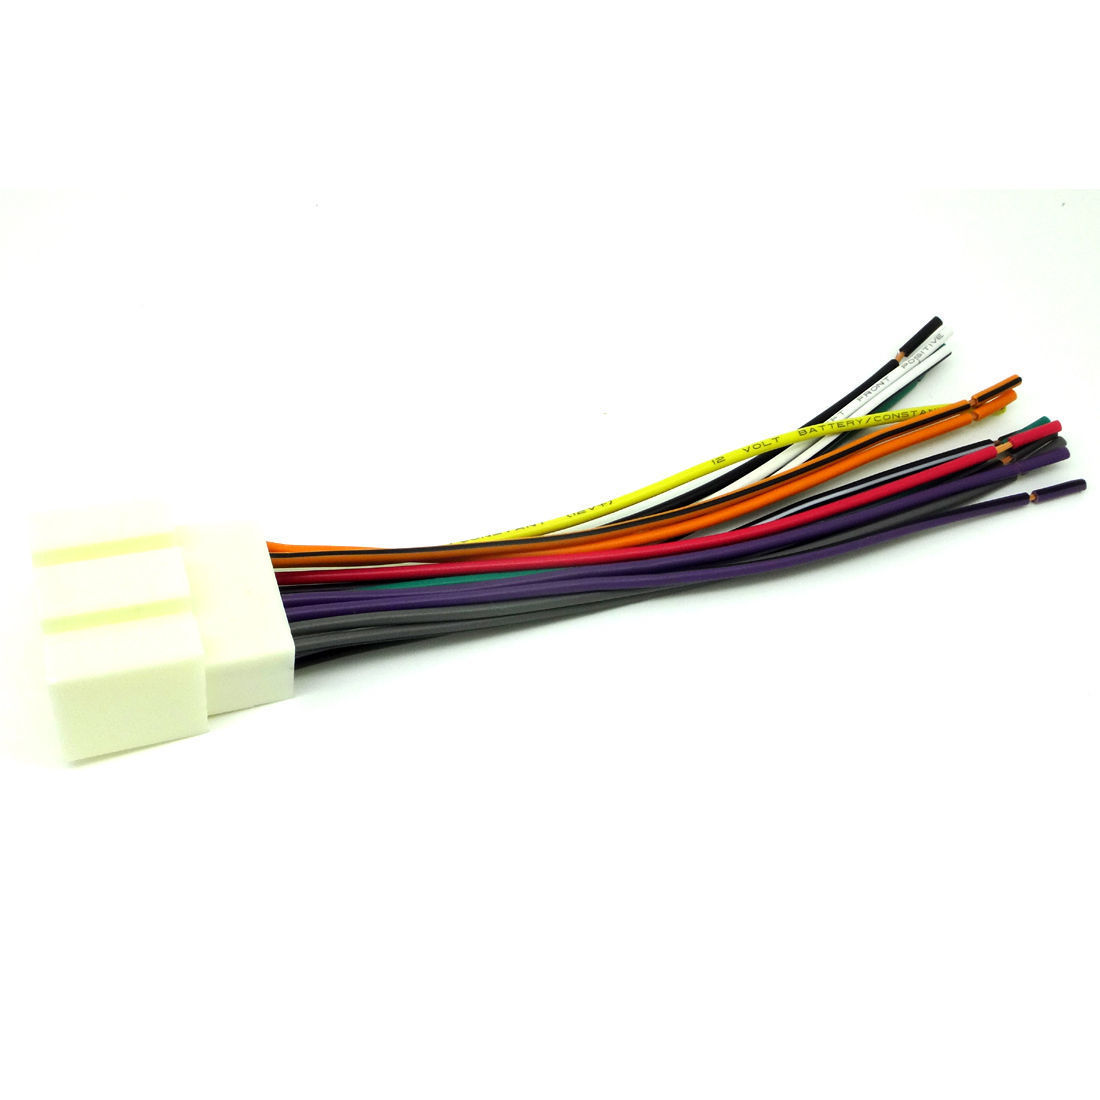 Fordd LINCOLN CAR STEREO CD PLAYER WIRING HARNESS WIRE AFTERMARKET font b RADIO b font INSTALL compare prices on thunderbird radio online shopping buy low price,Thunderbird B Wiring